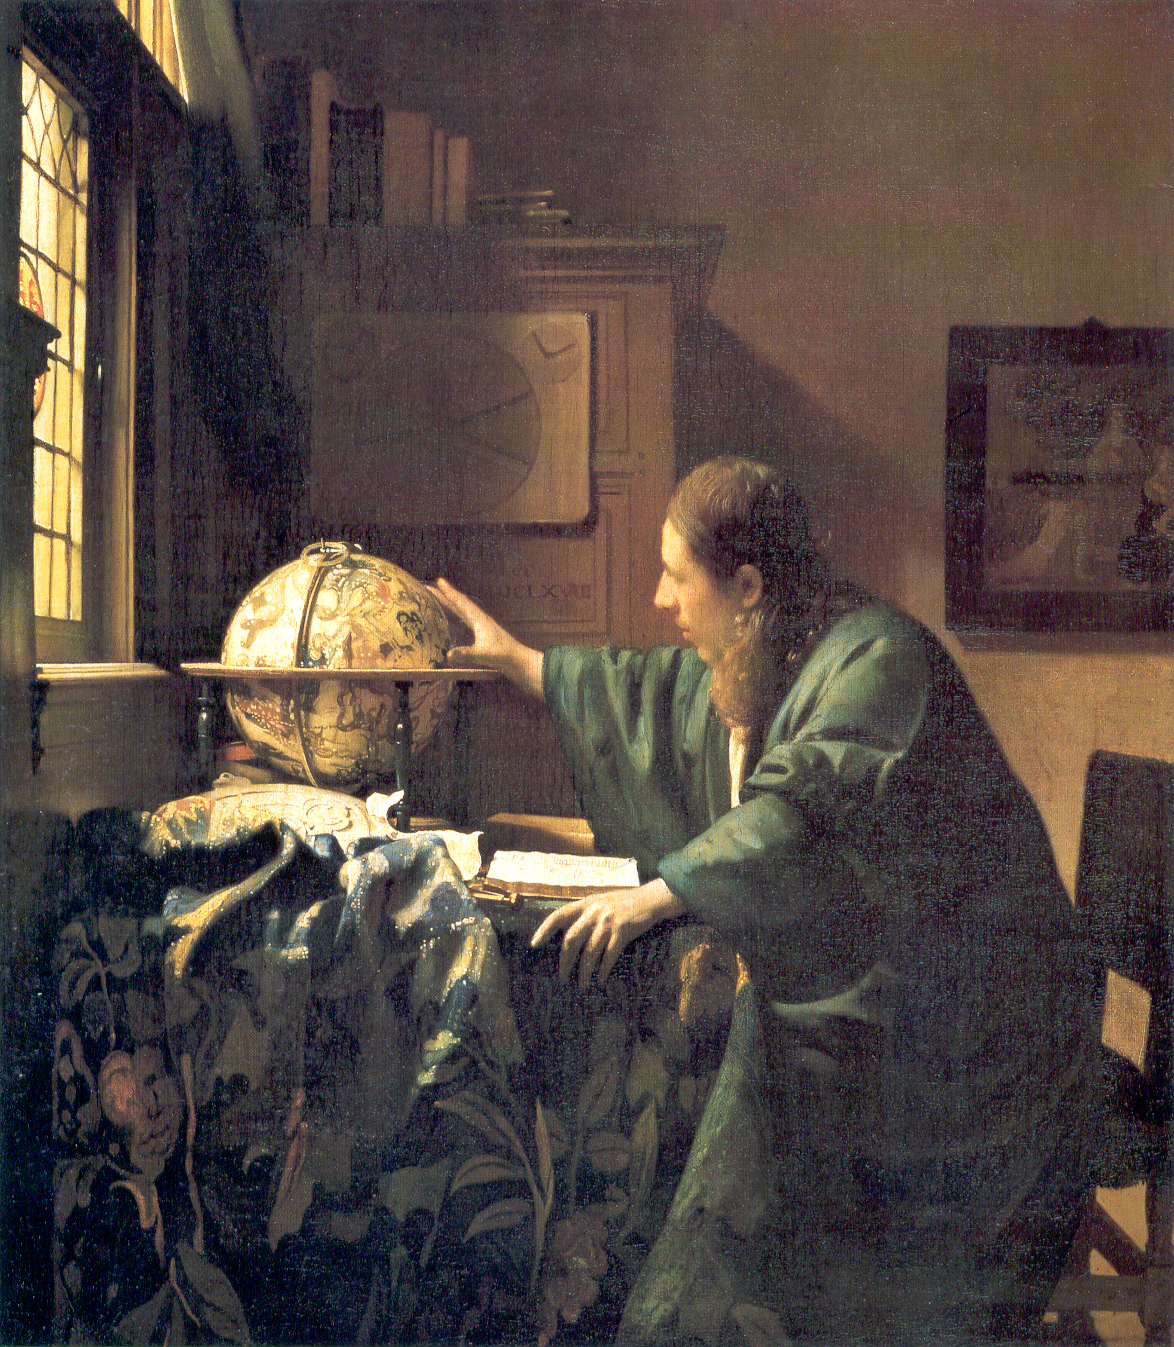 https://i1.wp.com/upload.wikimedia.org/wikipedia/commons/3/32/JohannesVermeer-TheAstronomer%281668%29.jpg